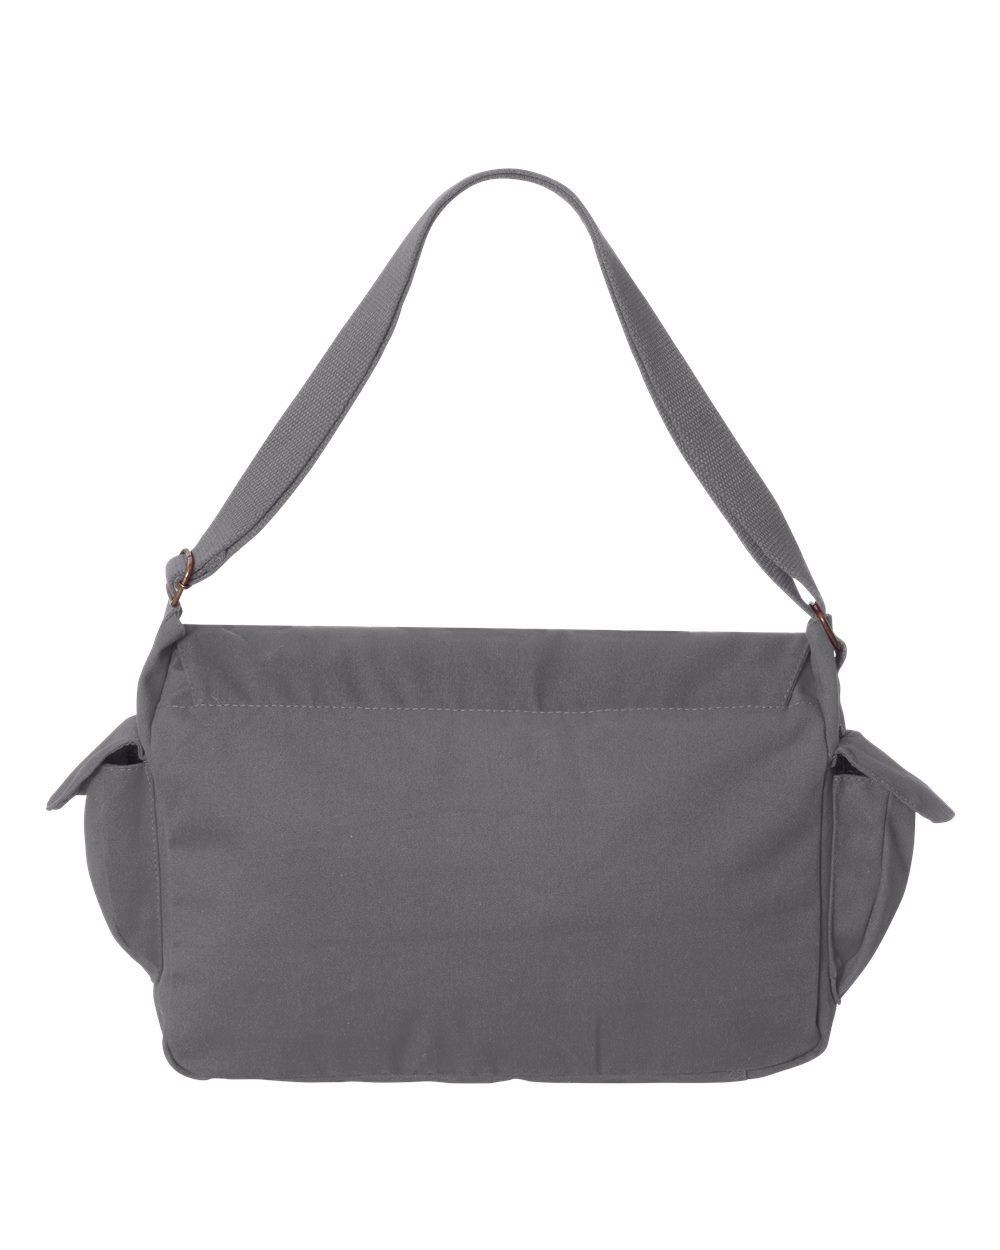 Tenacitee Aged Like a Fine Wine 2018 Grey Brushed Canvas Messenger Bag by Tenacitee (Image #2)